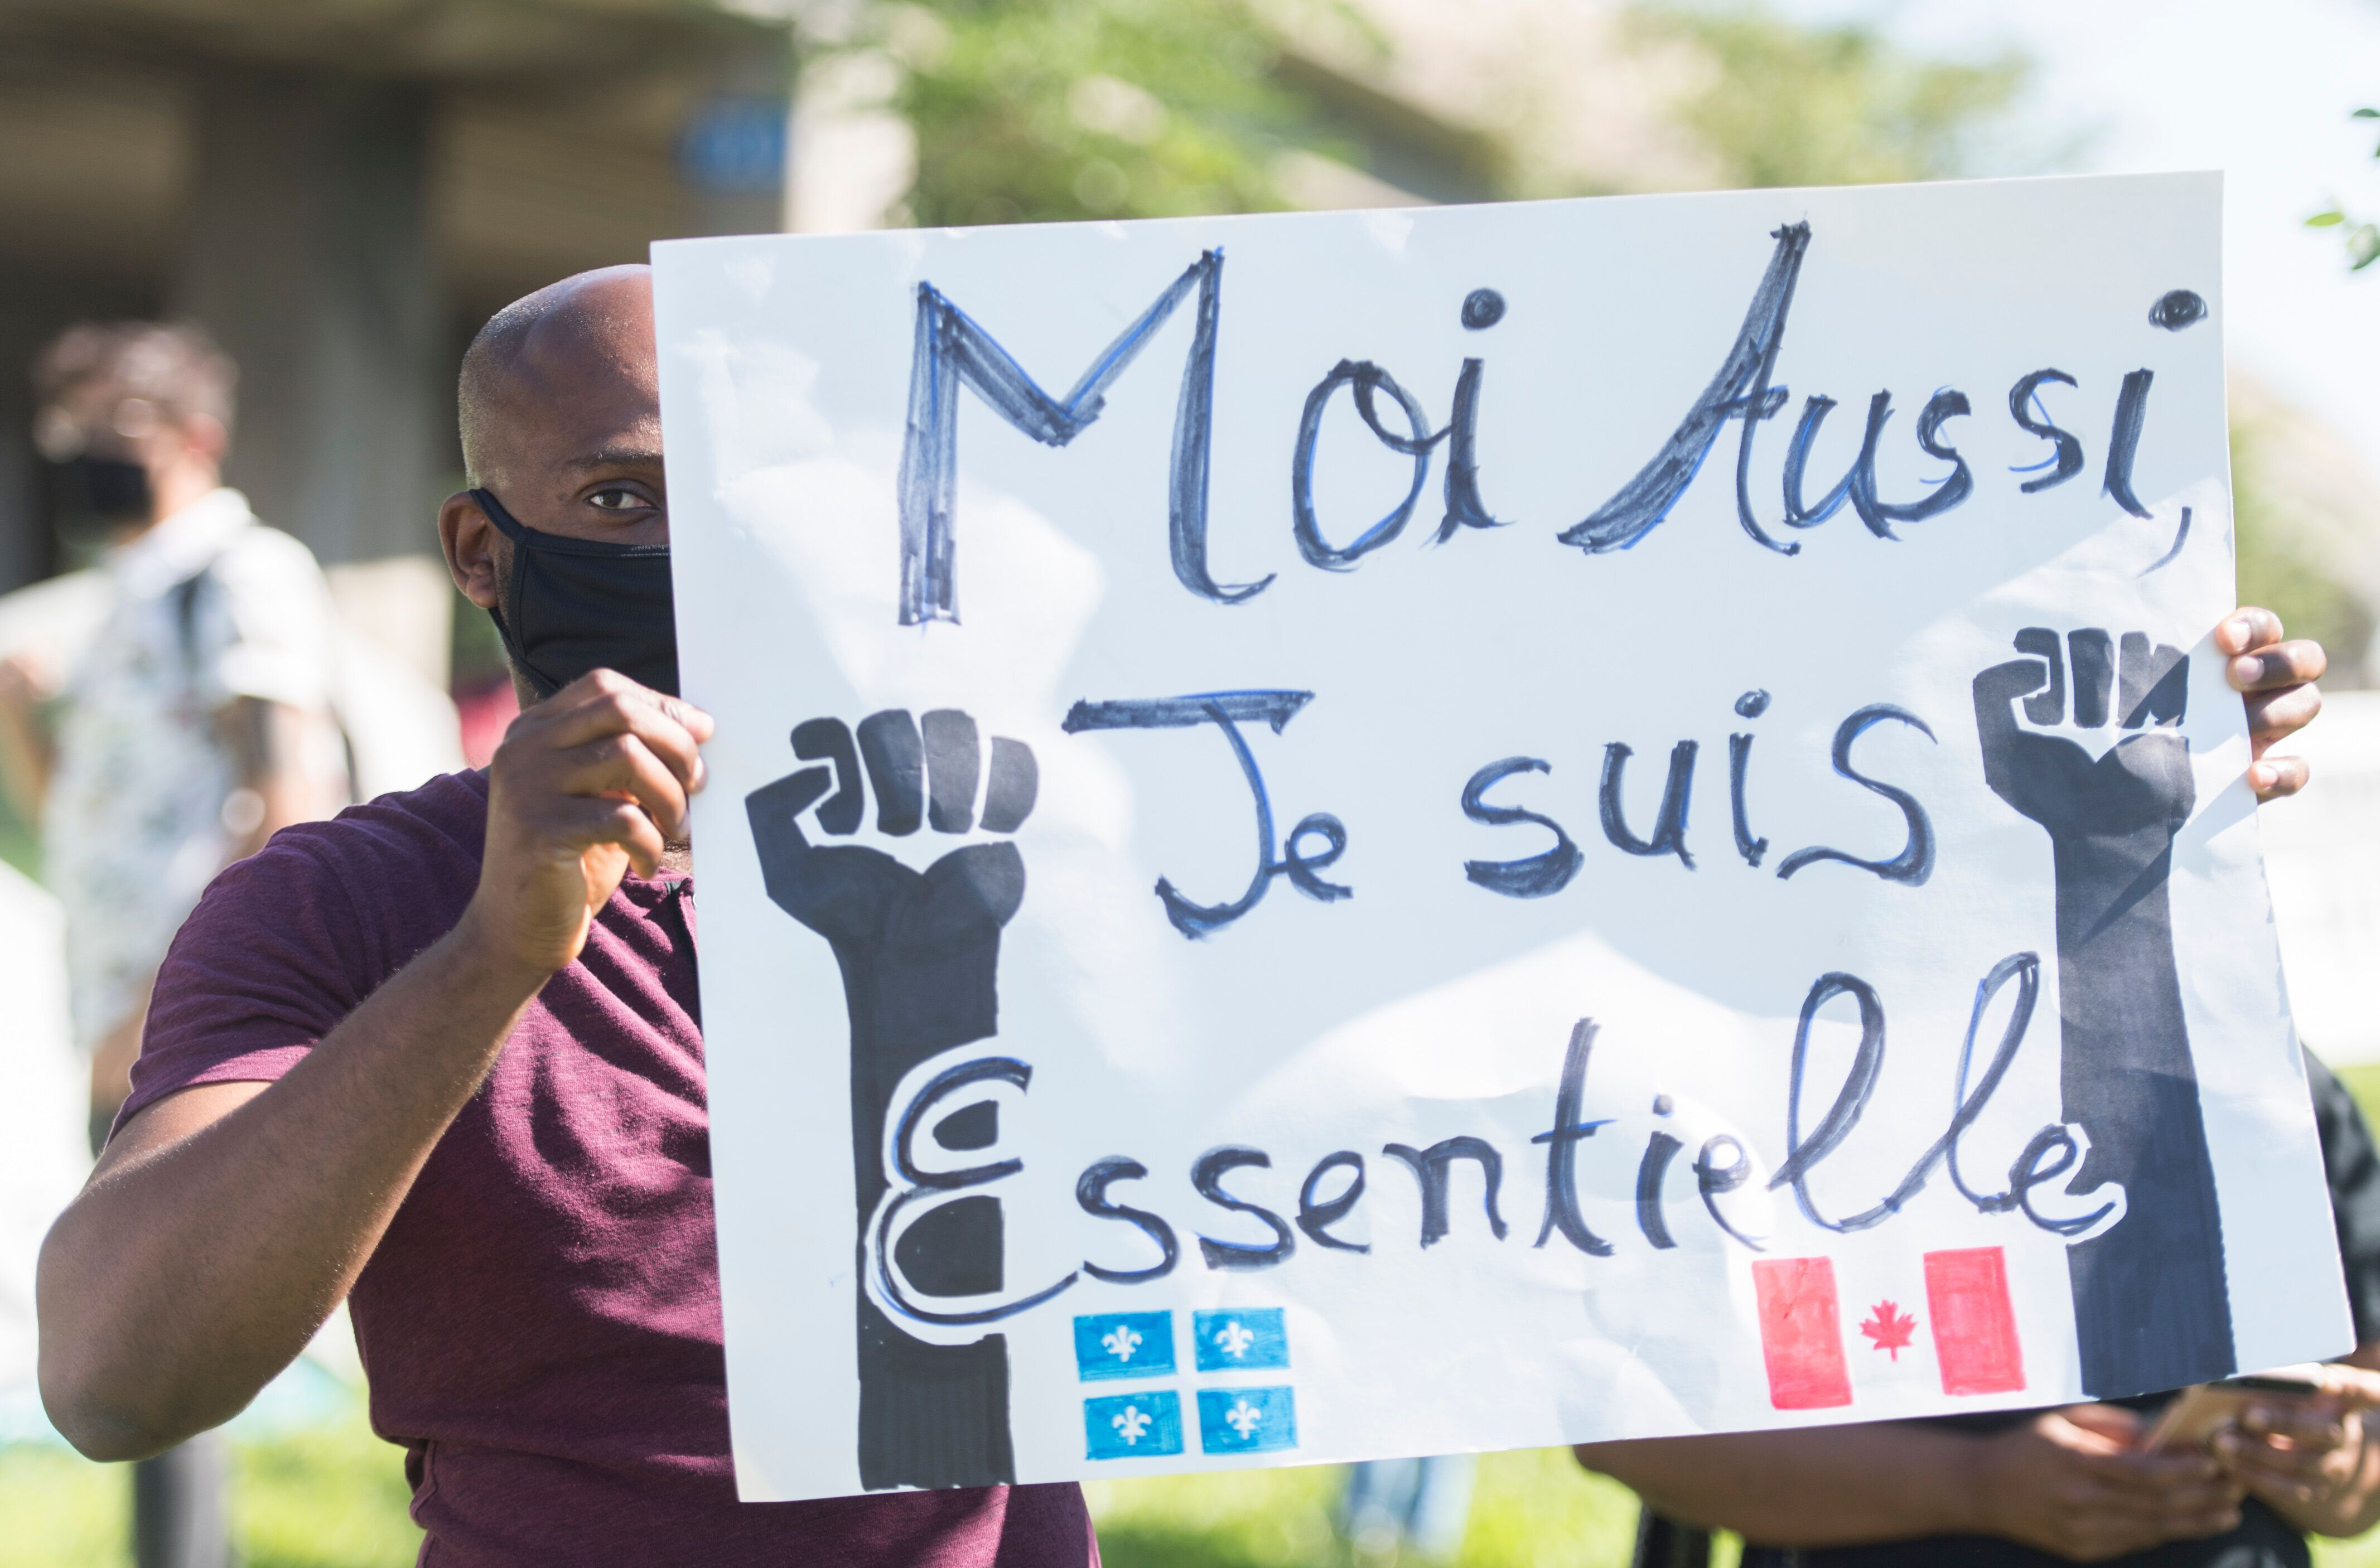 People take part in a protest outside Prime Minister Justin Trudeau's constituency office in Montreal on Aug. 15, 2020, where